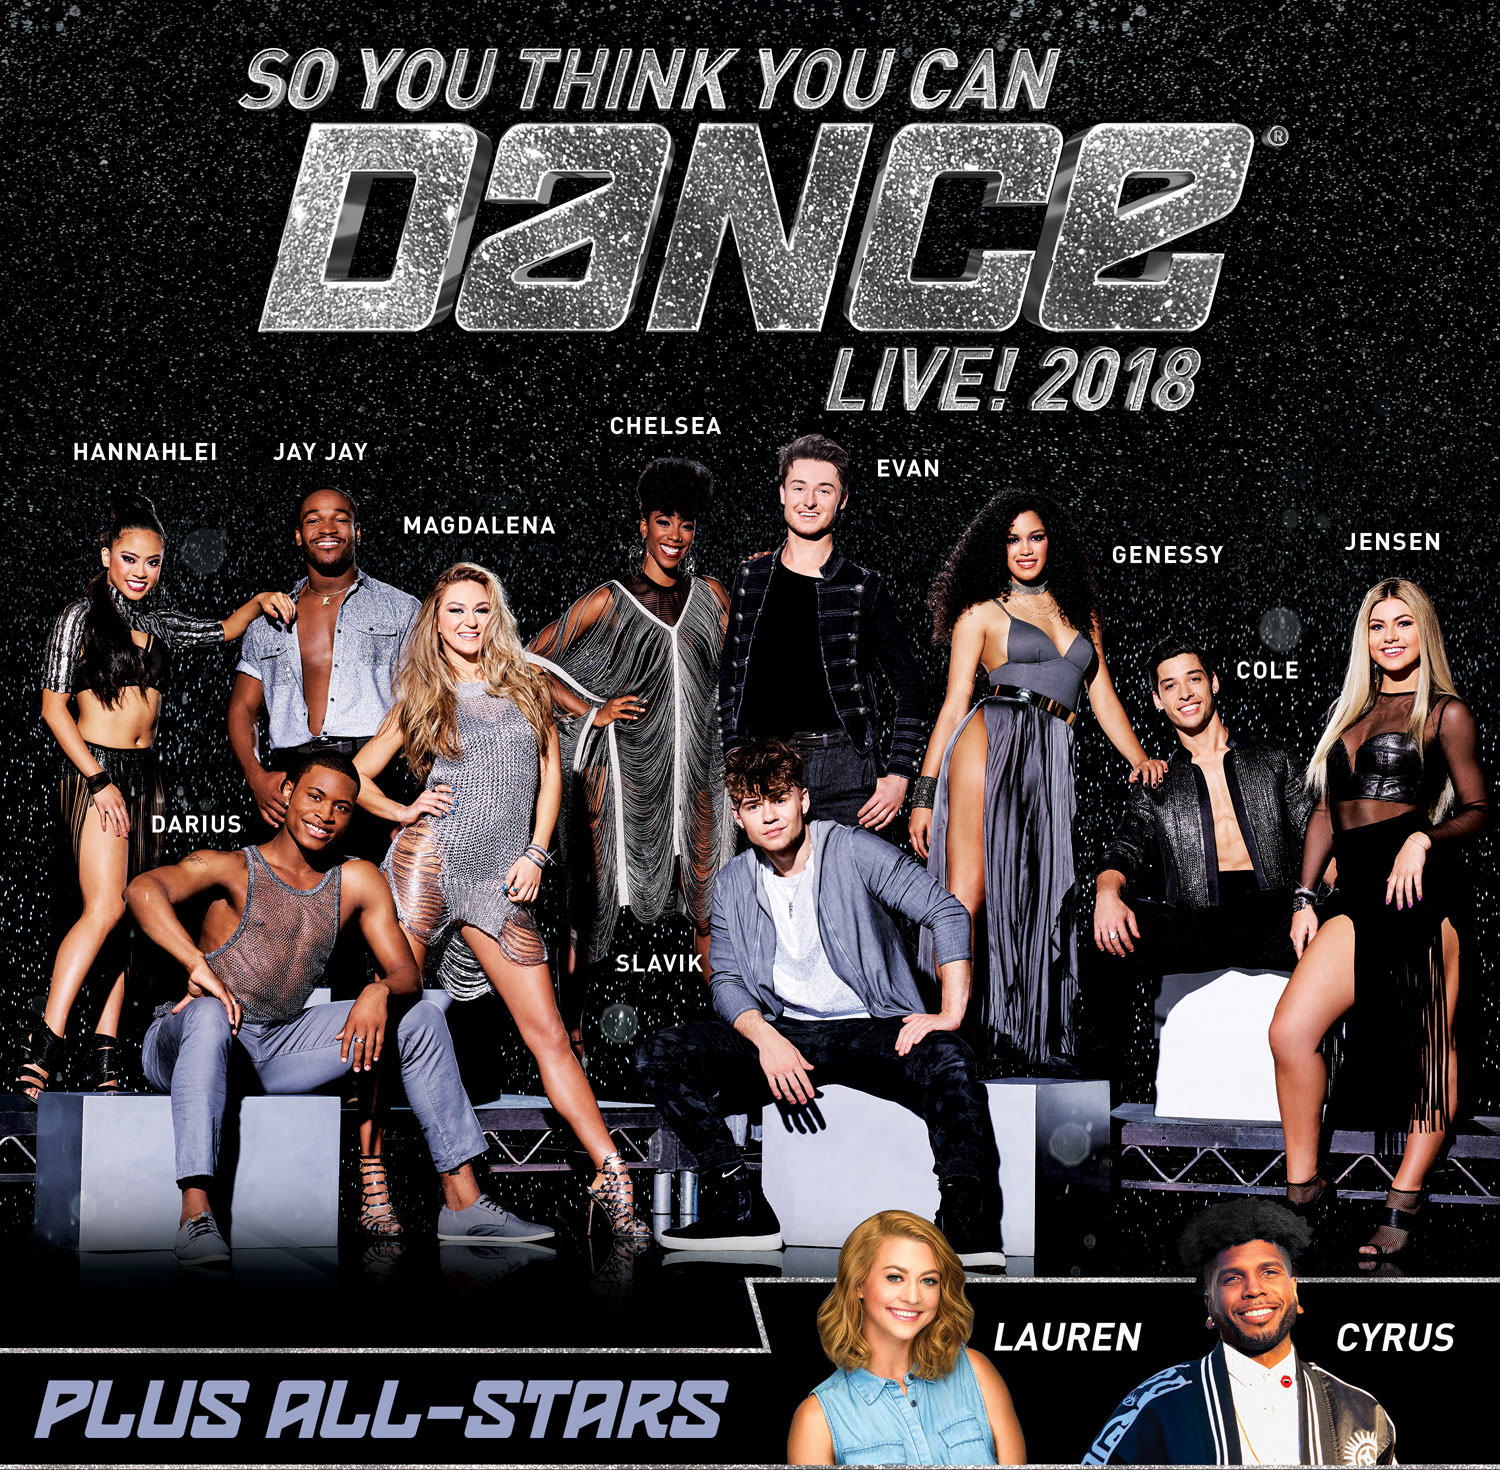 So You Think You Can Dance – Live 2018!